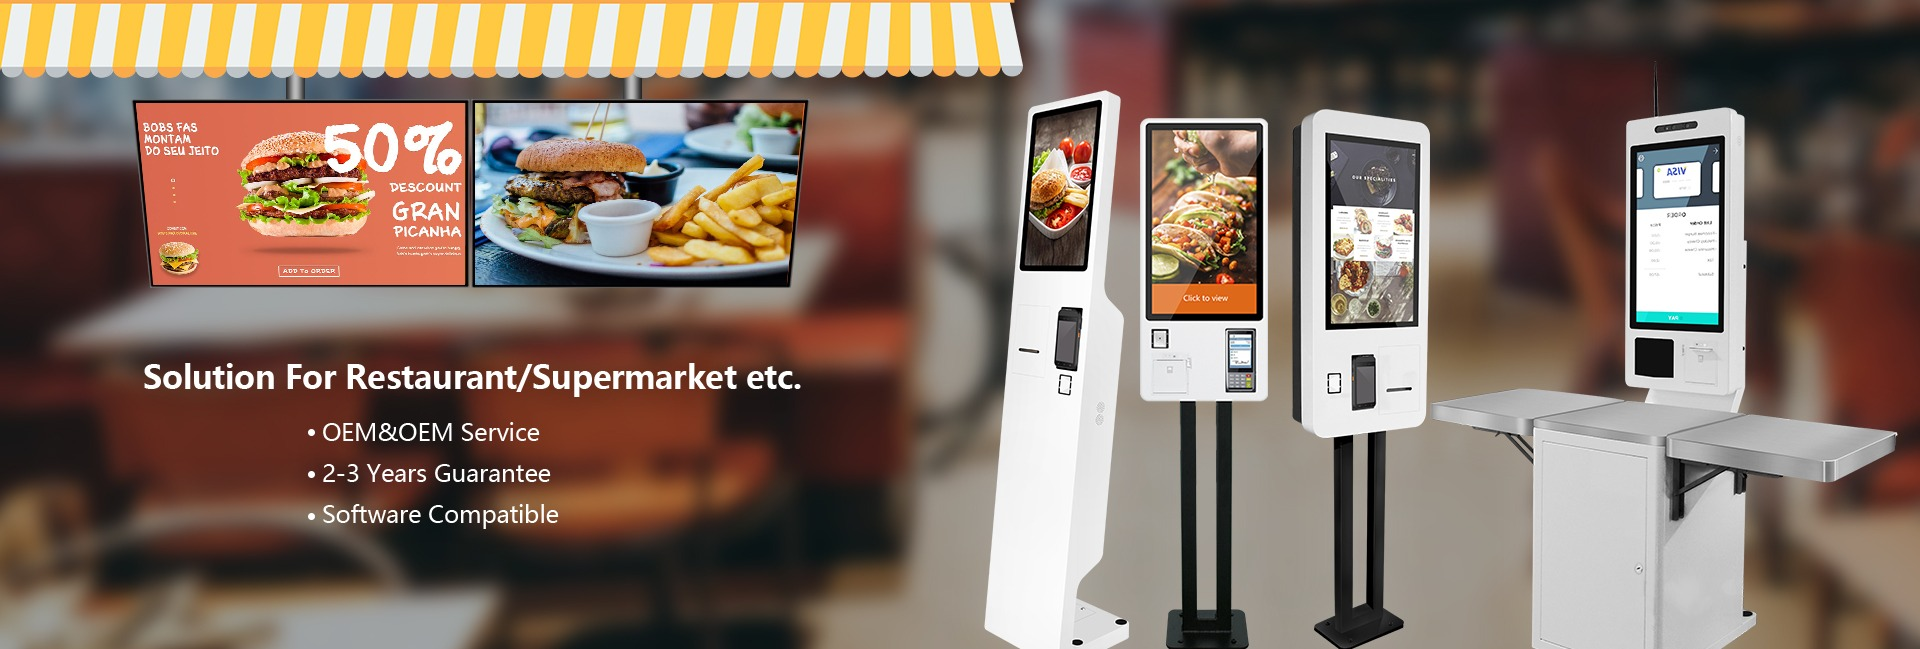 point of sale software for hair salon Digital Screens and self order kiosk